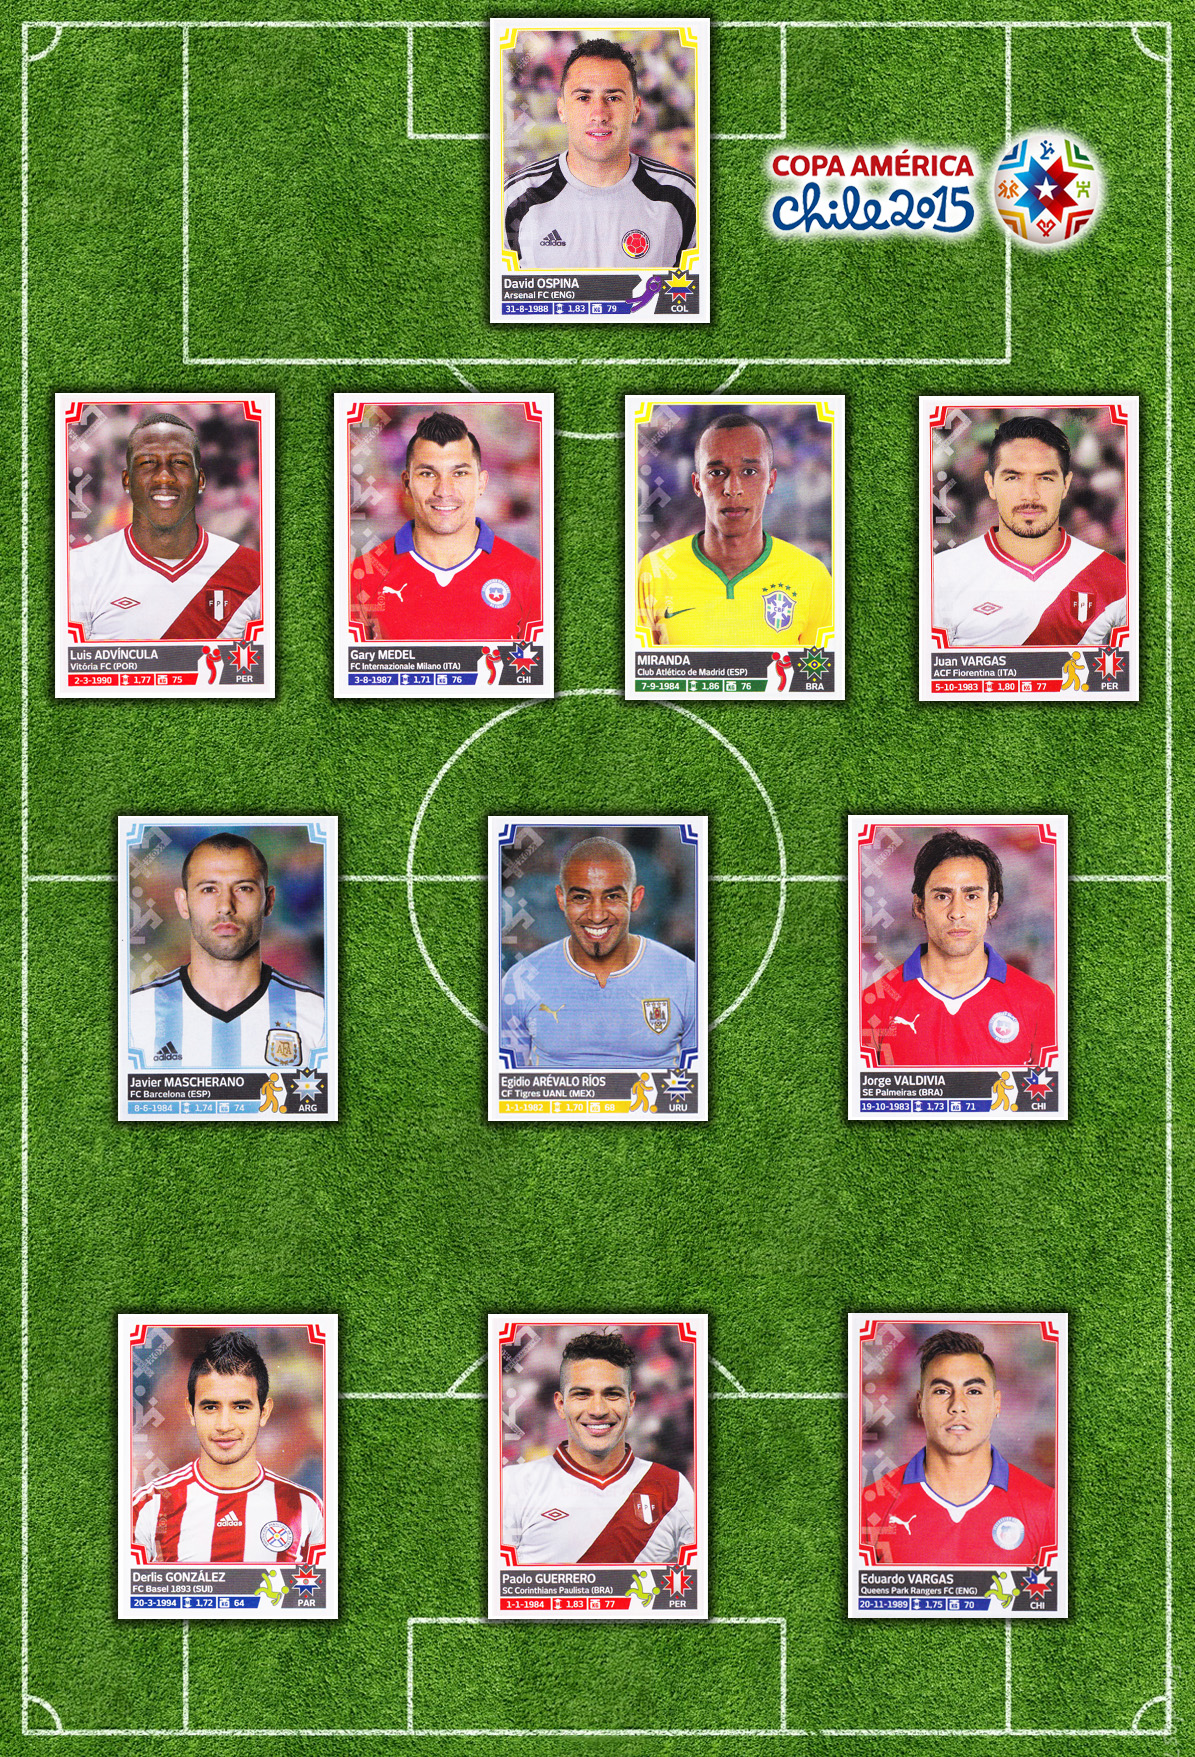 Equipo Ideal Prof_Ottati